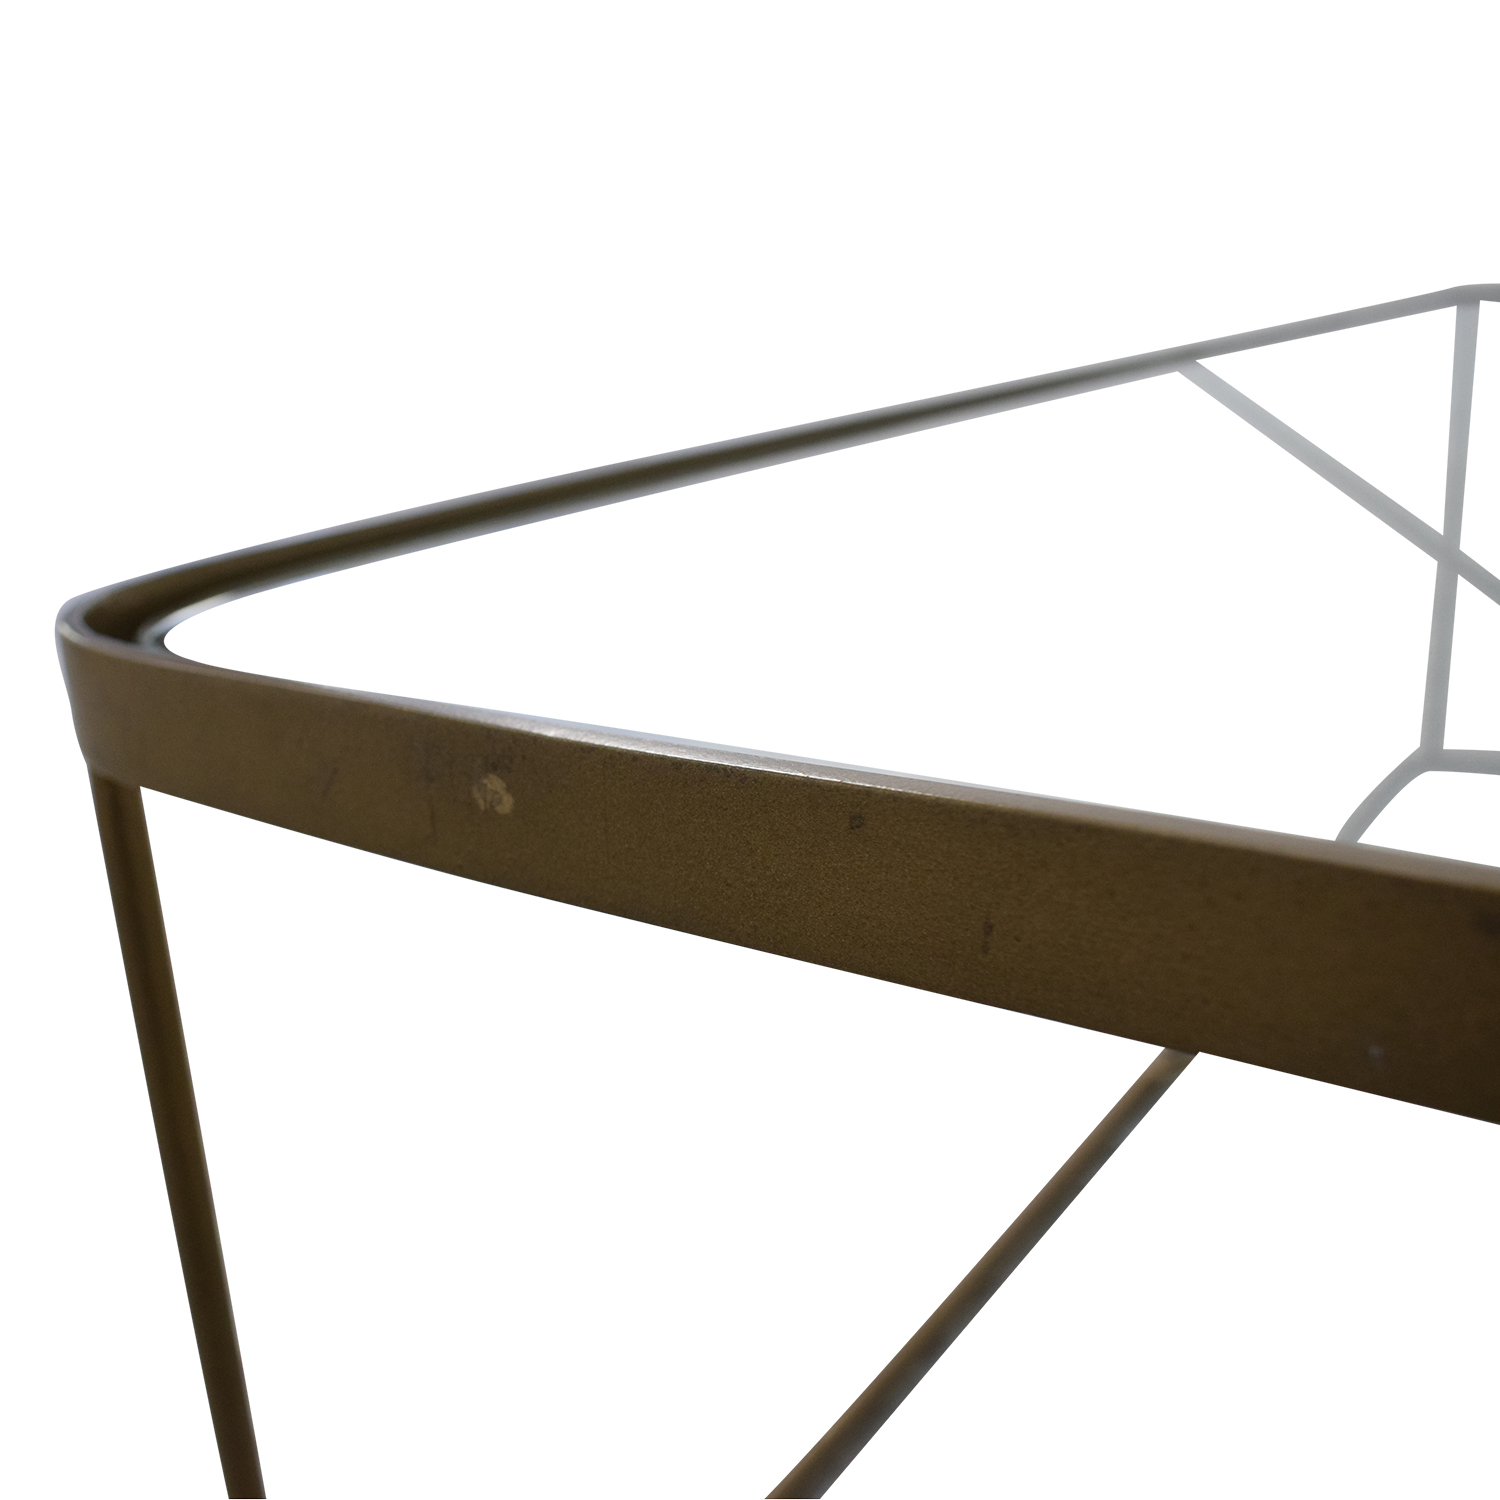 Four Hands Four Hands Coffee Table price